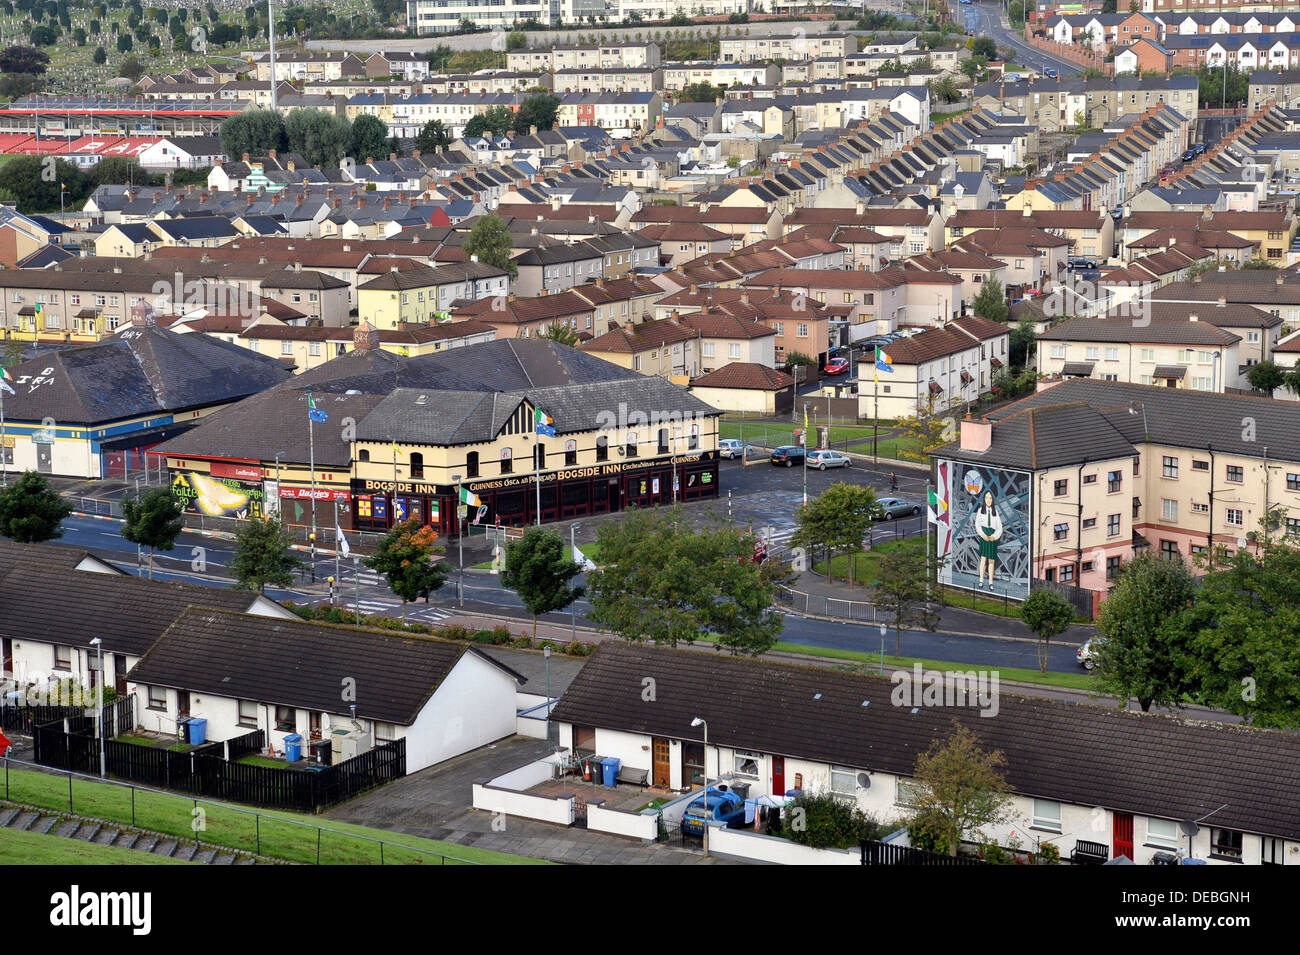 The nationalist Bogside, Derry, Londonderry, Northern Ireland,UK - Stock Image